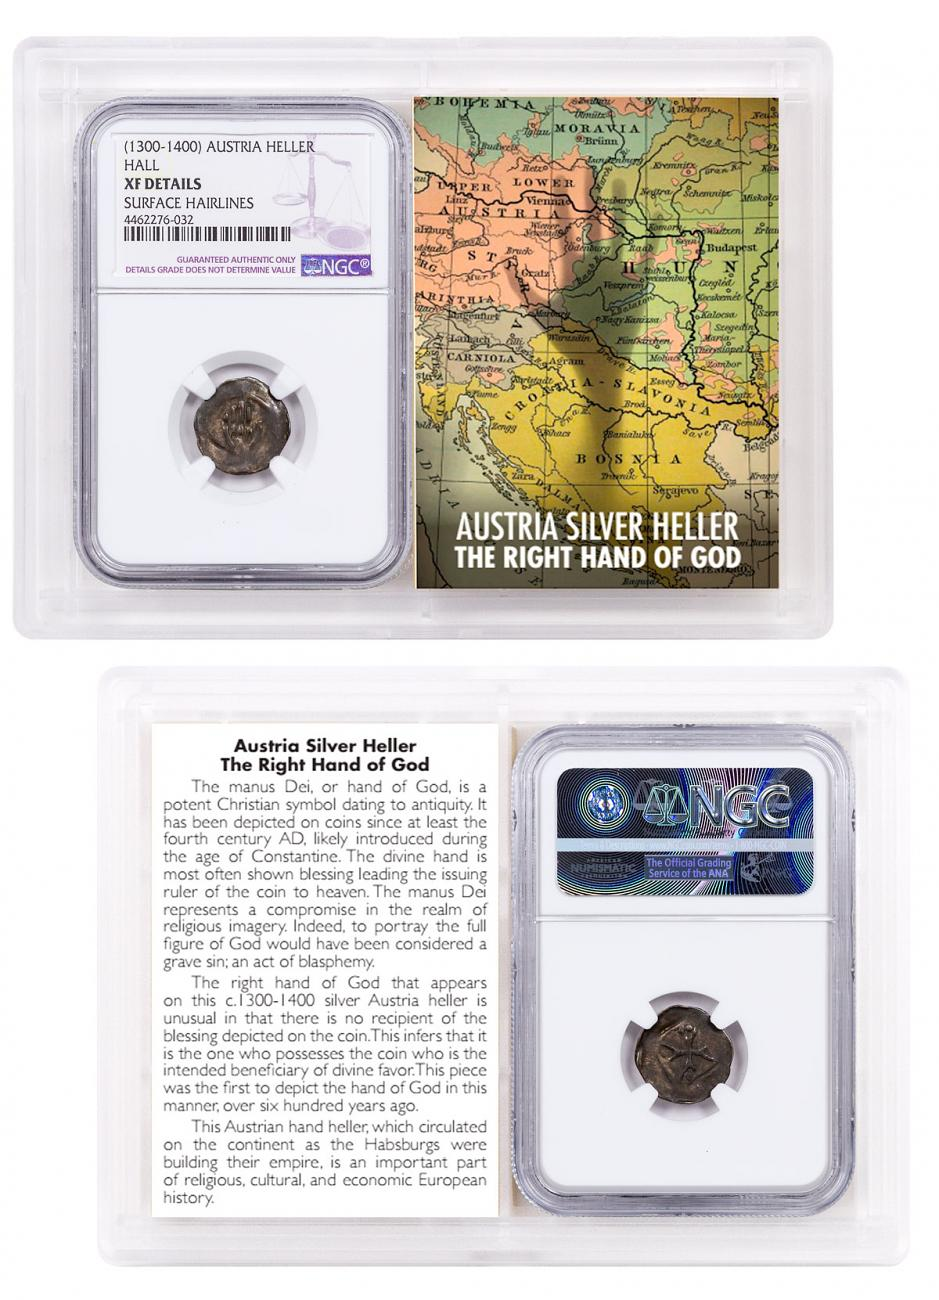 1300-1400 Austria Hall Silver Hand Heller NGC XF Details Story Vault